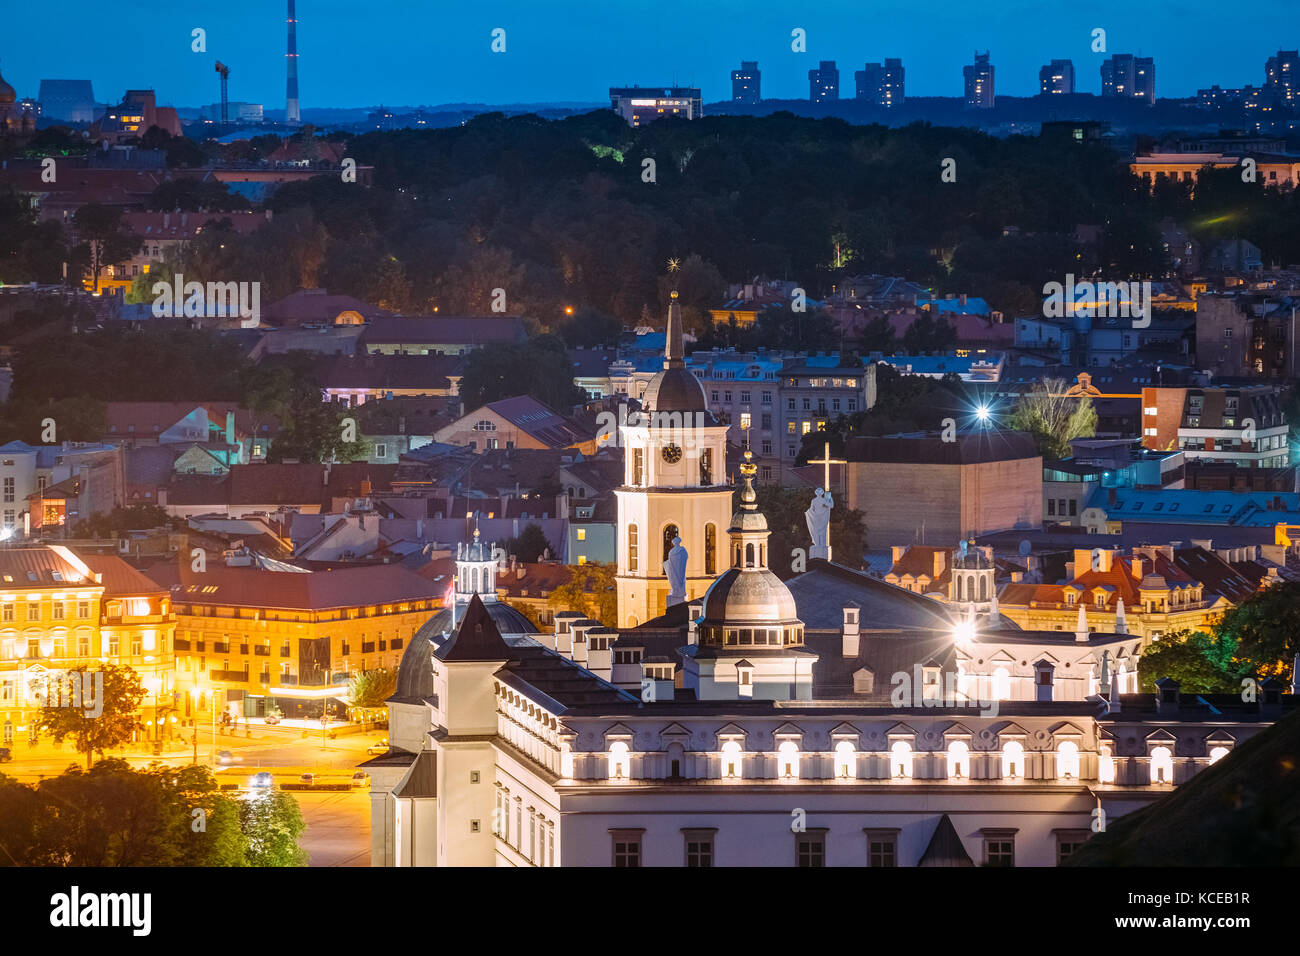 6c64029532 Vilnius, Lithuania, Eastern Europe. Aerial View Of Historic Center  Cityscape In Blue Hour After Sunset. Travel View Of Old Town In Night  Illuminations